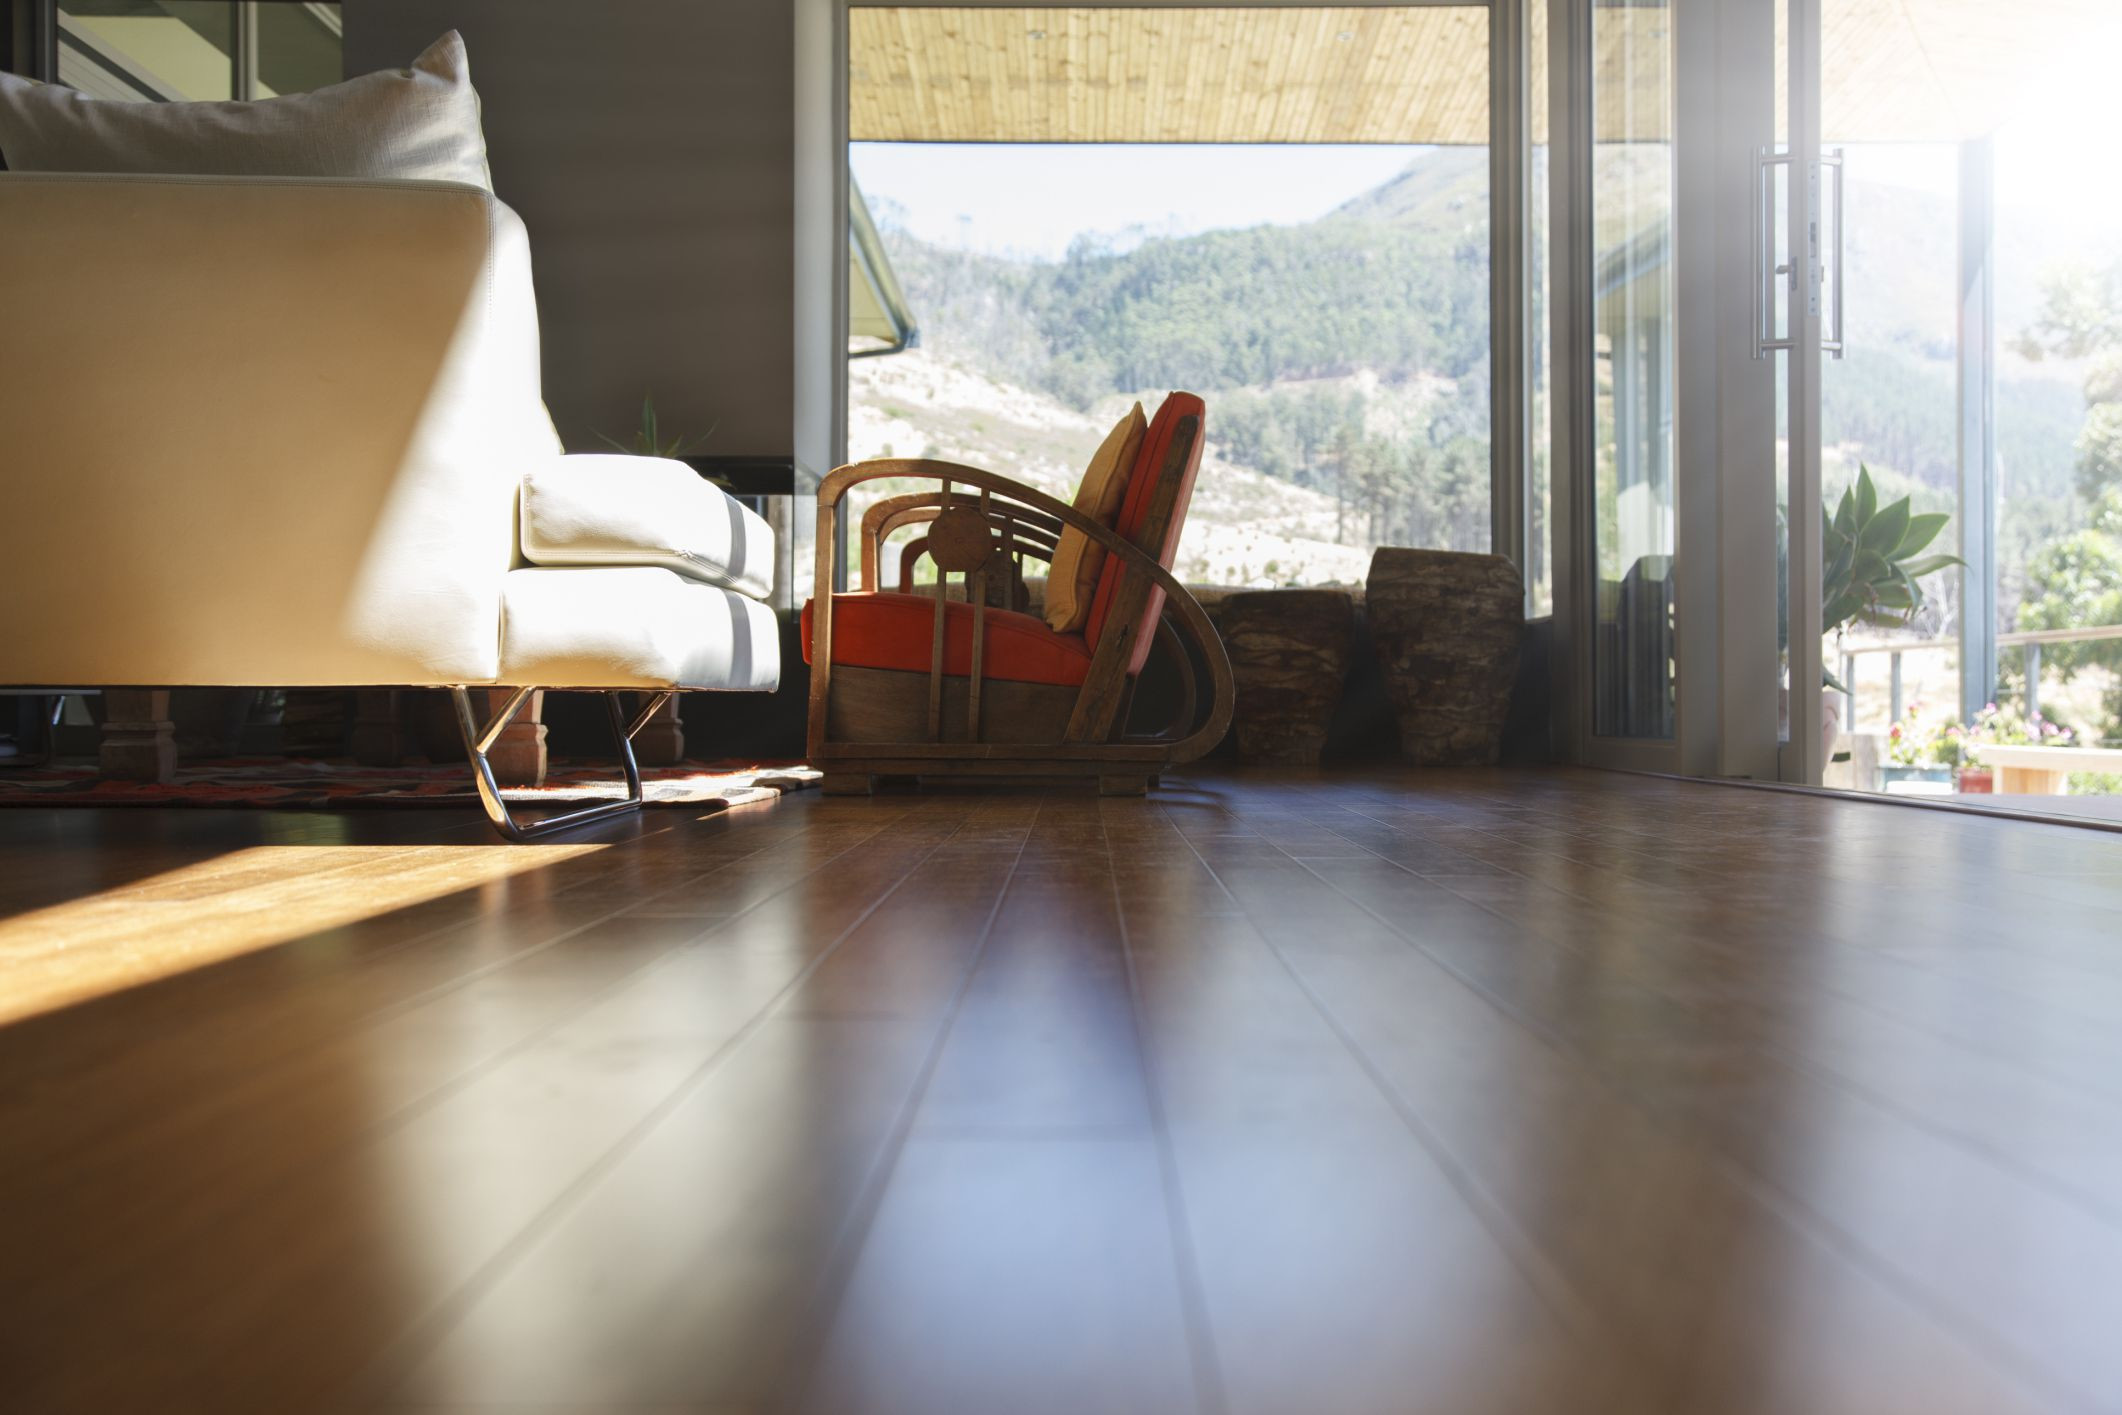 hardwood flooring wholesale prices of pros and cons of bellawood flooring from lumber liquidators pertaining to exotic hardwood flooring 525439899 56a49d3a3df78cf77283453d